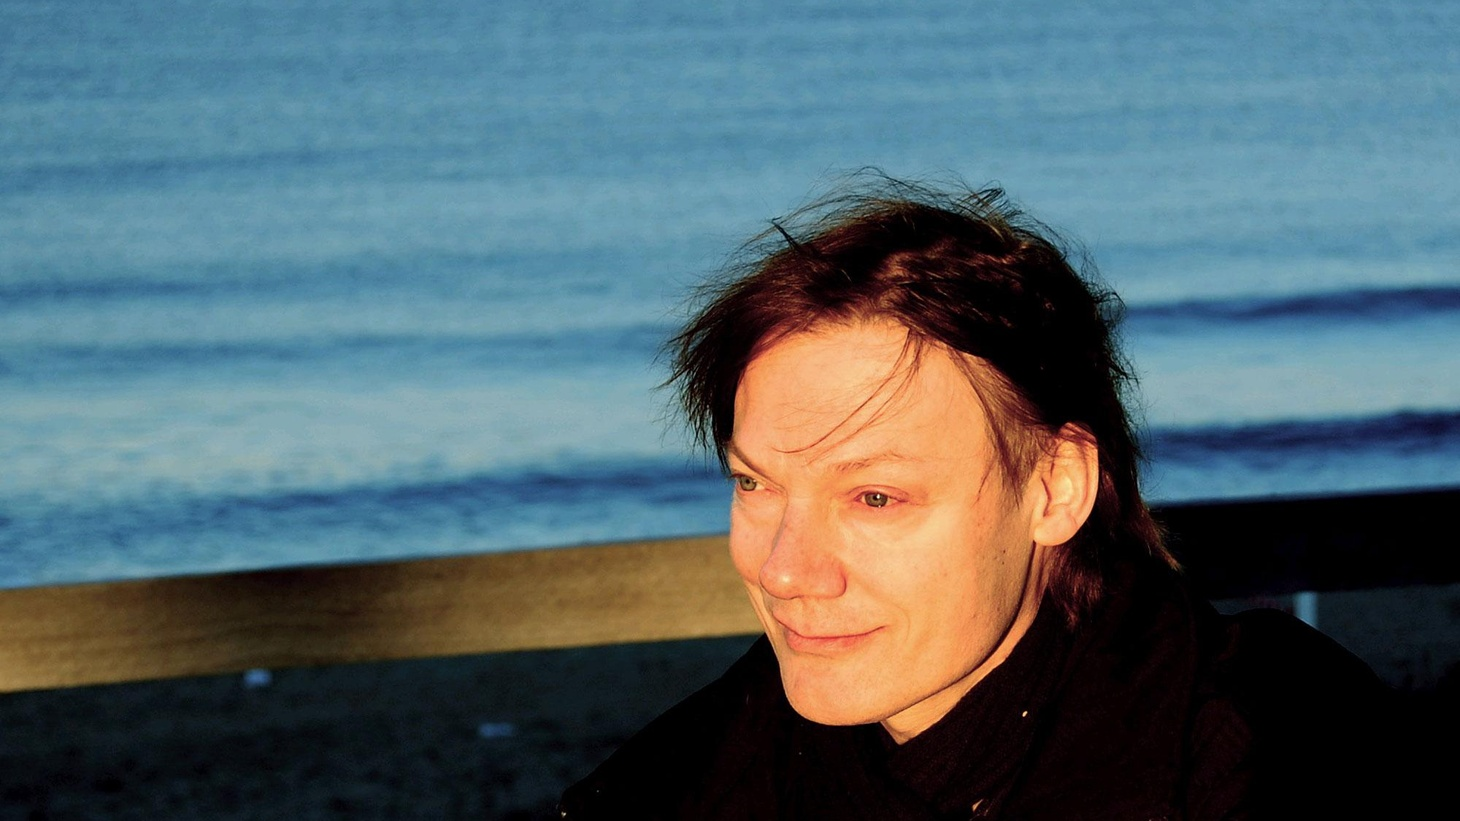 ...from My Oracle Lives Uptown.   Grammy Award-winning producer, composer and musician William Orbit is best known for his work with Madonna, Blur and Beth Orton...